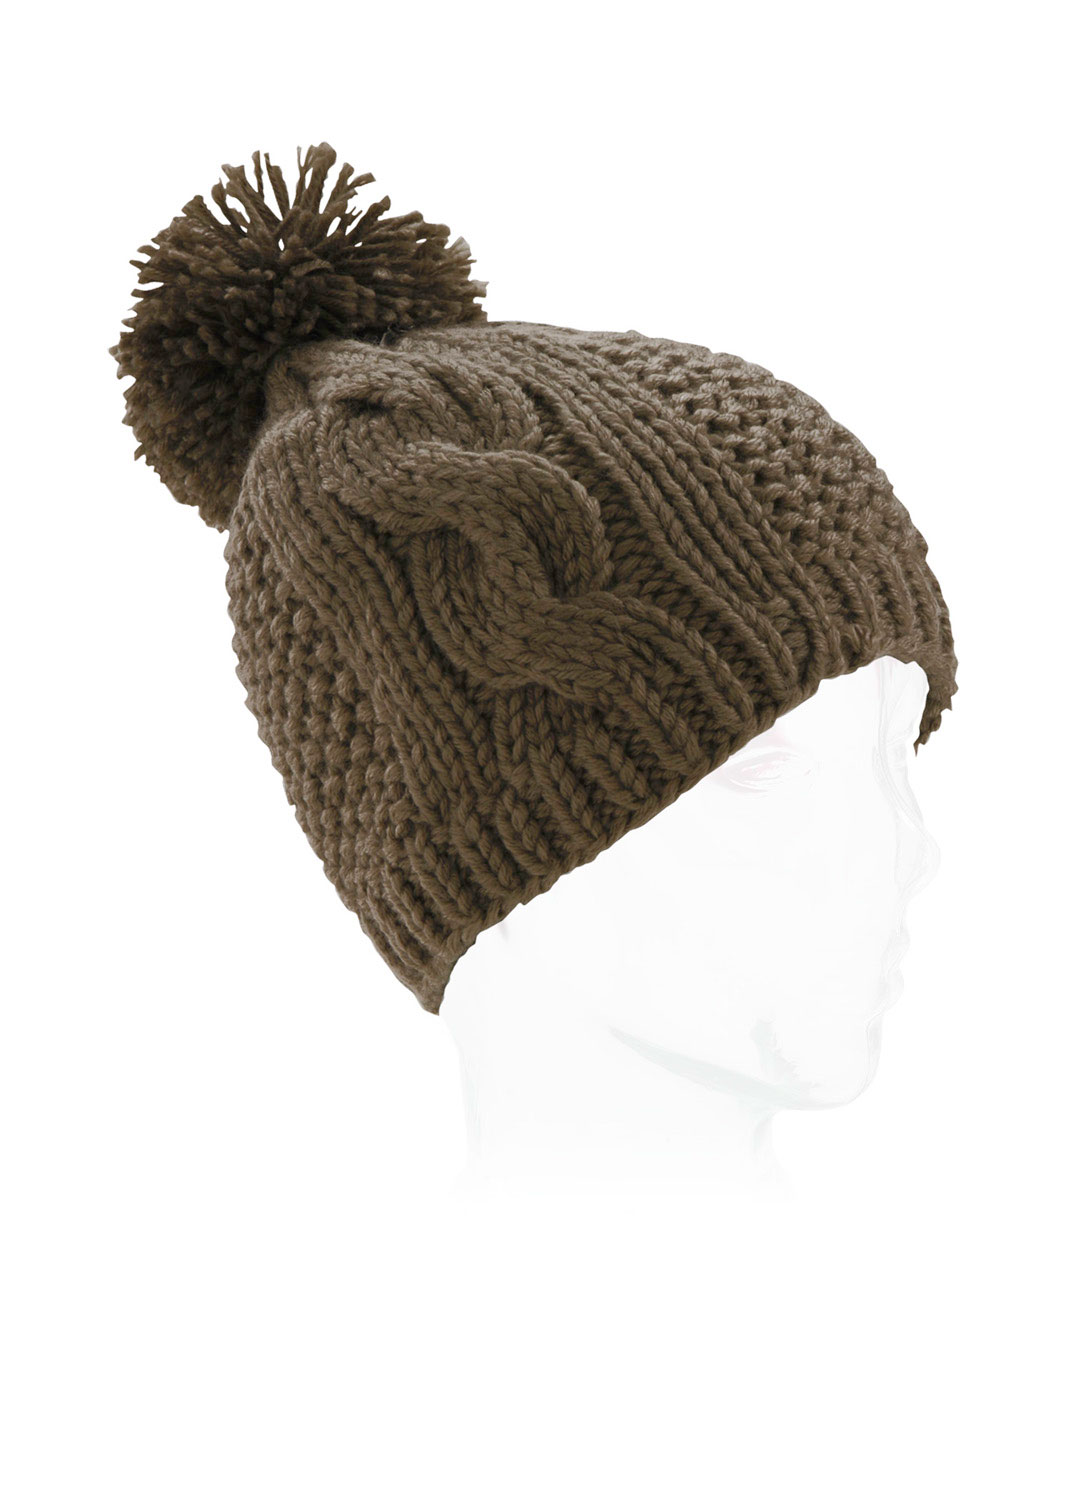 Snowboard If you want to stay warm, or just hide a bad haircut, the Burton Katie Joe Beanie is the stylish way to cover your head. This amazing hat is made from 100% acrylic fabrics, this means that you will never have to worry about your beanie stretching out, losing its shape or getting wrinkled. The mixed cable knit beanie with a pom was hand knit so every customer can be assured of the receiving a quality hat every time. If you want a hat that you do not have to worry about how you treat it, the Burton Katie Joe Beanie is the answer.Key Features of the Burton Katie Joe Beanie: 100% Acrylic Mixed Cable Knit Beanie with Pom Hand Knit Skully Fit - $13.95